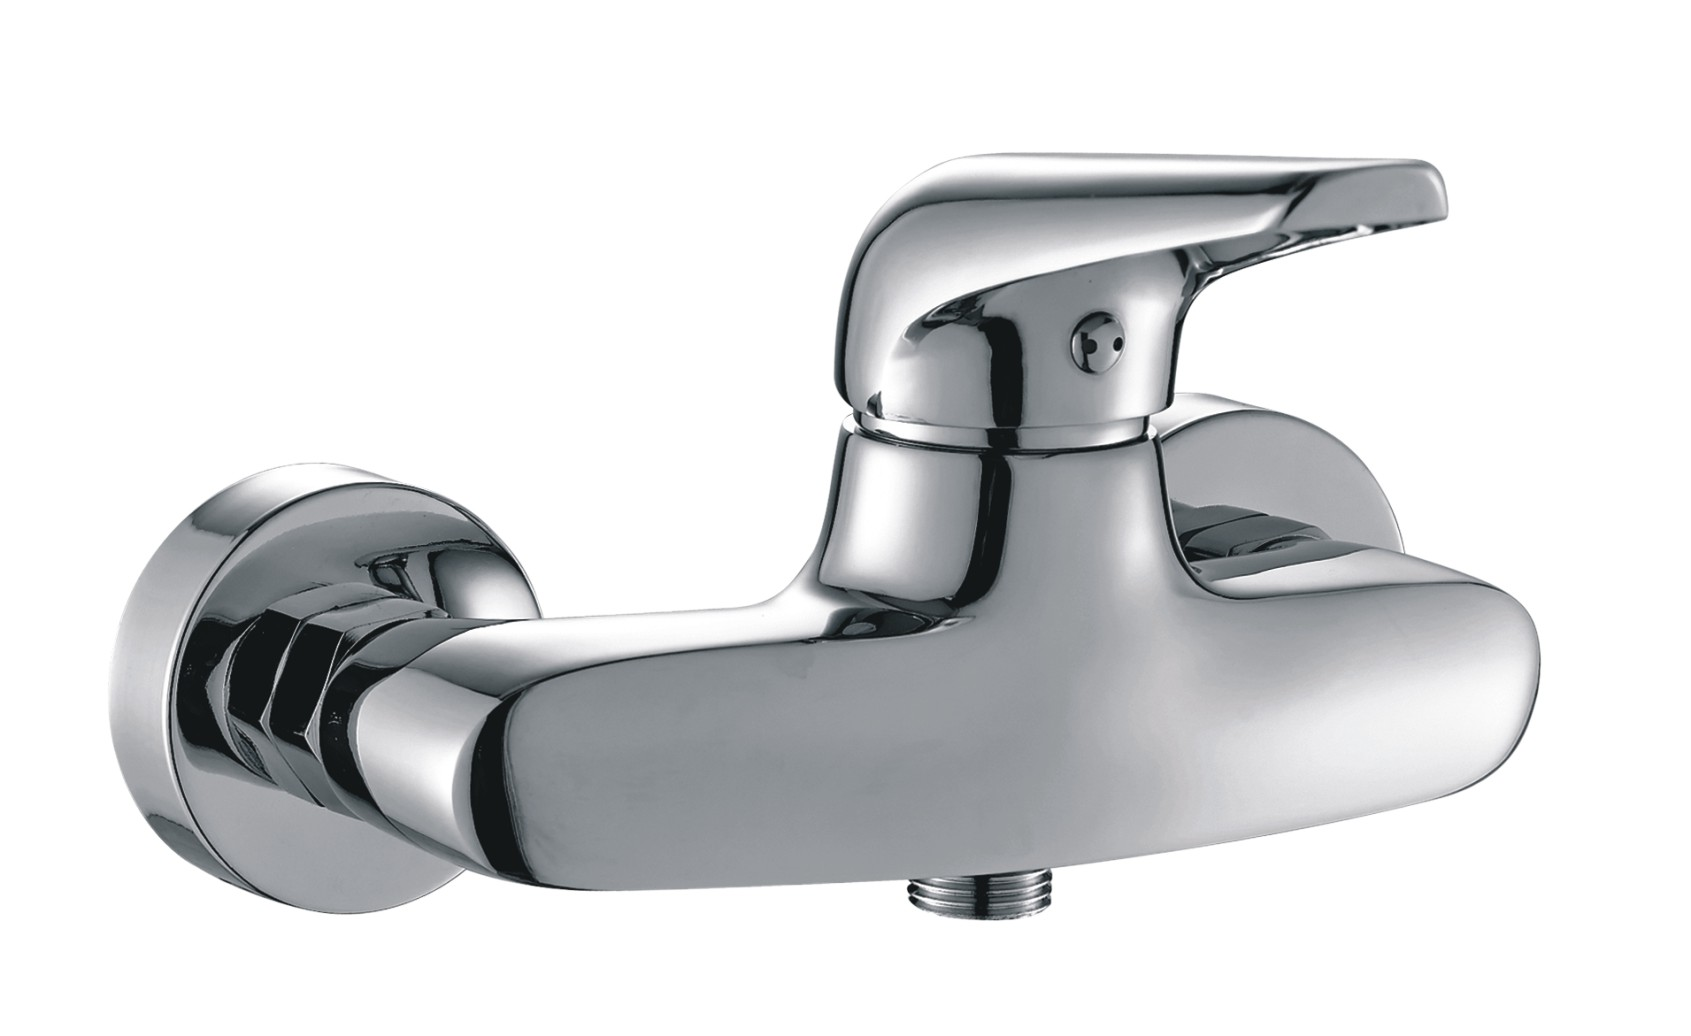 John CF-11353-2 Shower Mixer Faucet